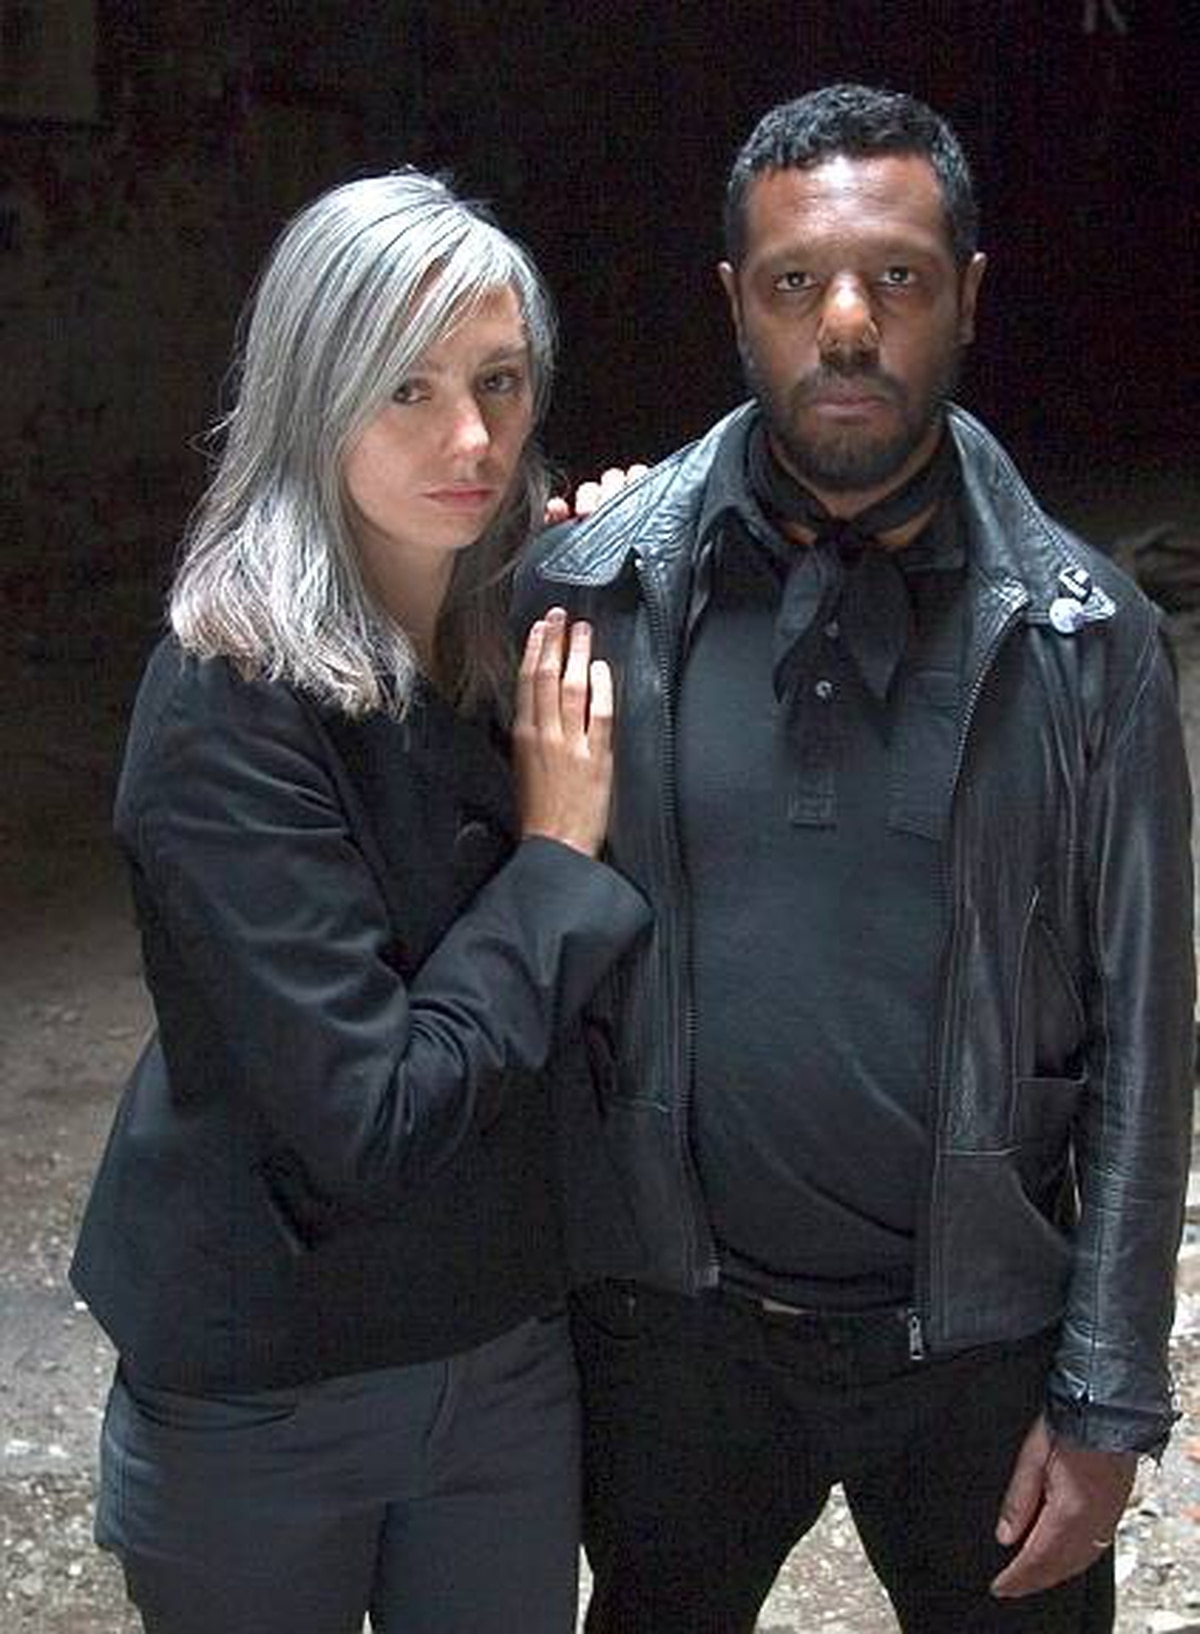 Keyboardist and singer Natalia Yanchak of Montreal band The Dears has naturally grey hair and welcomes the fact that young people are starting to embrace the shade.